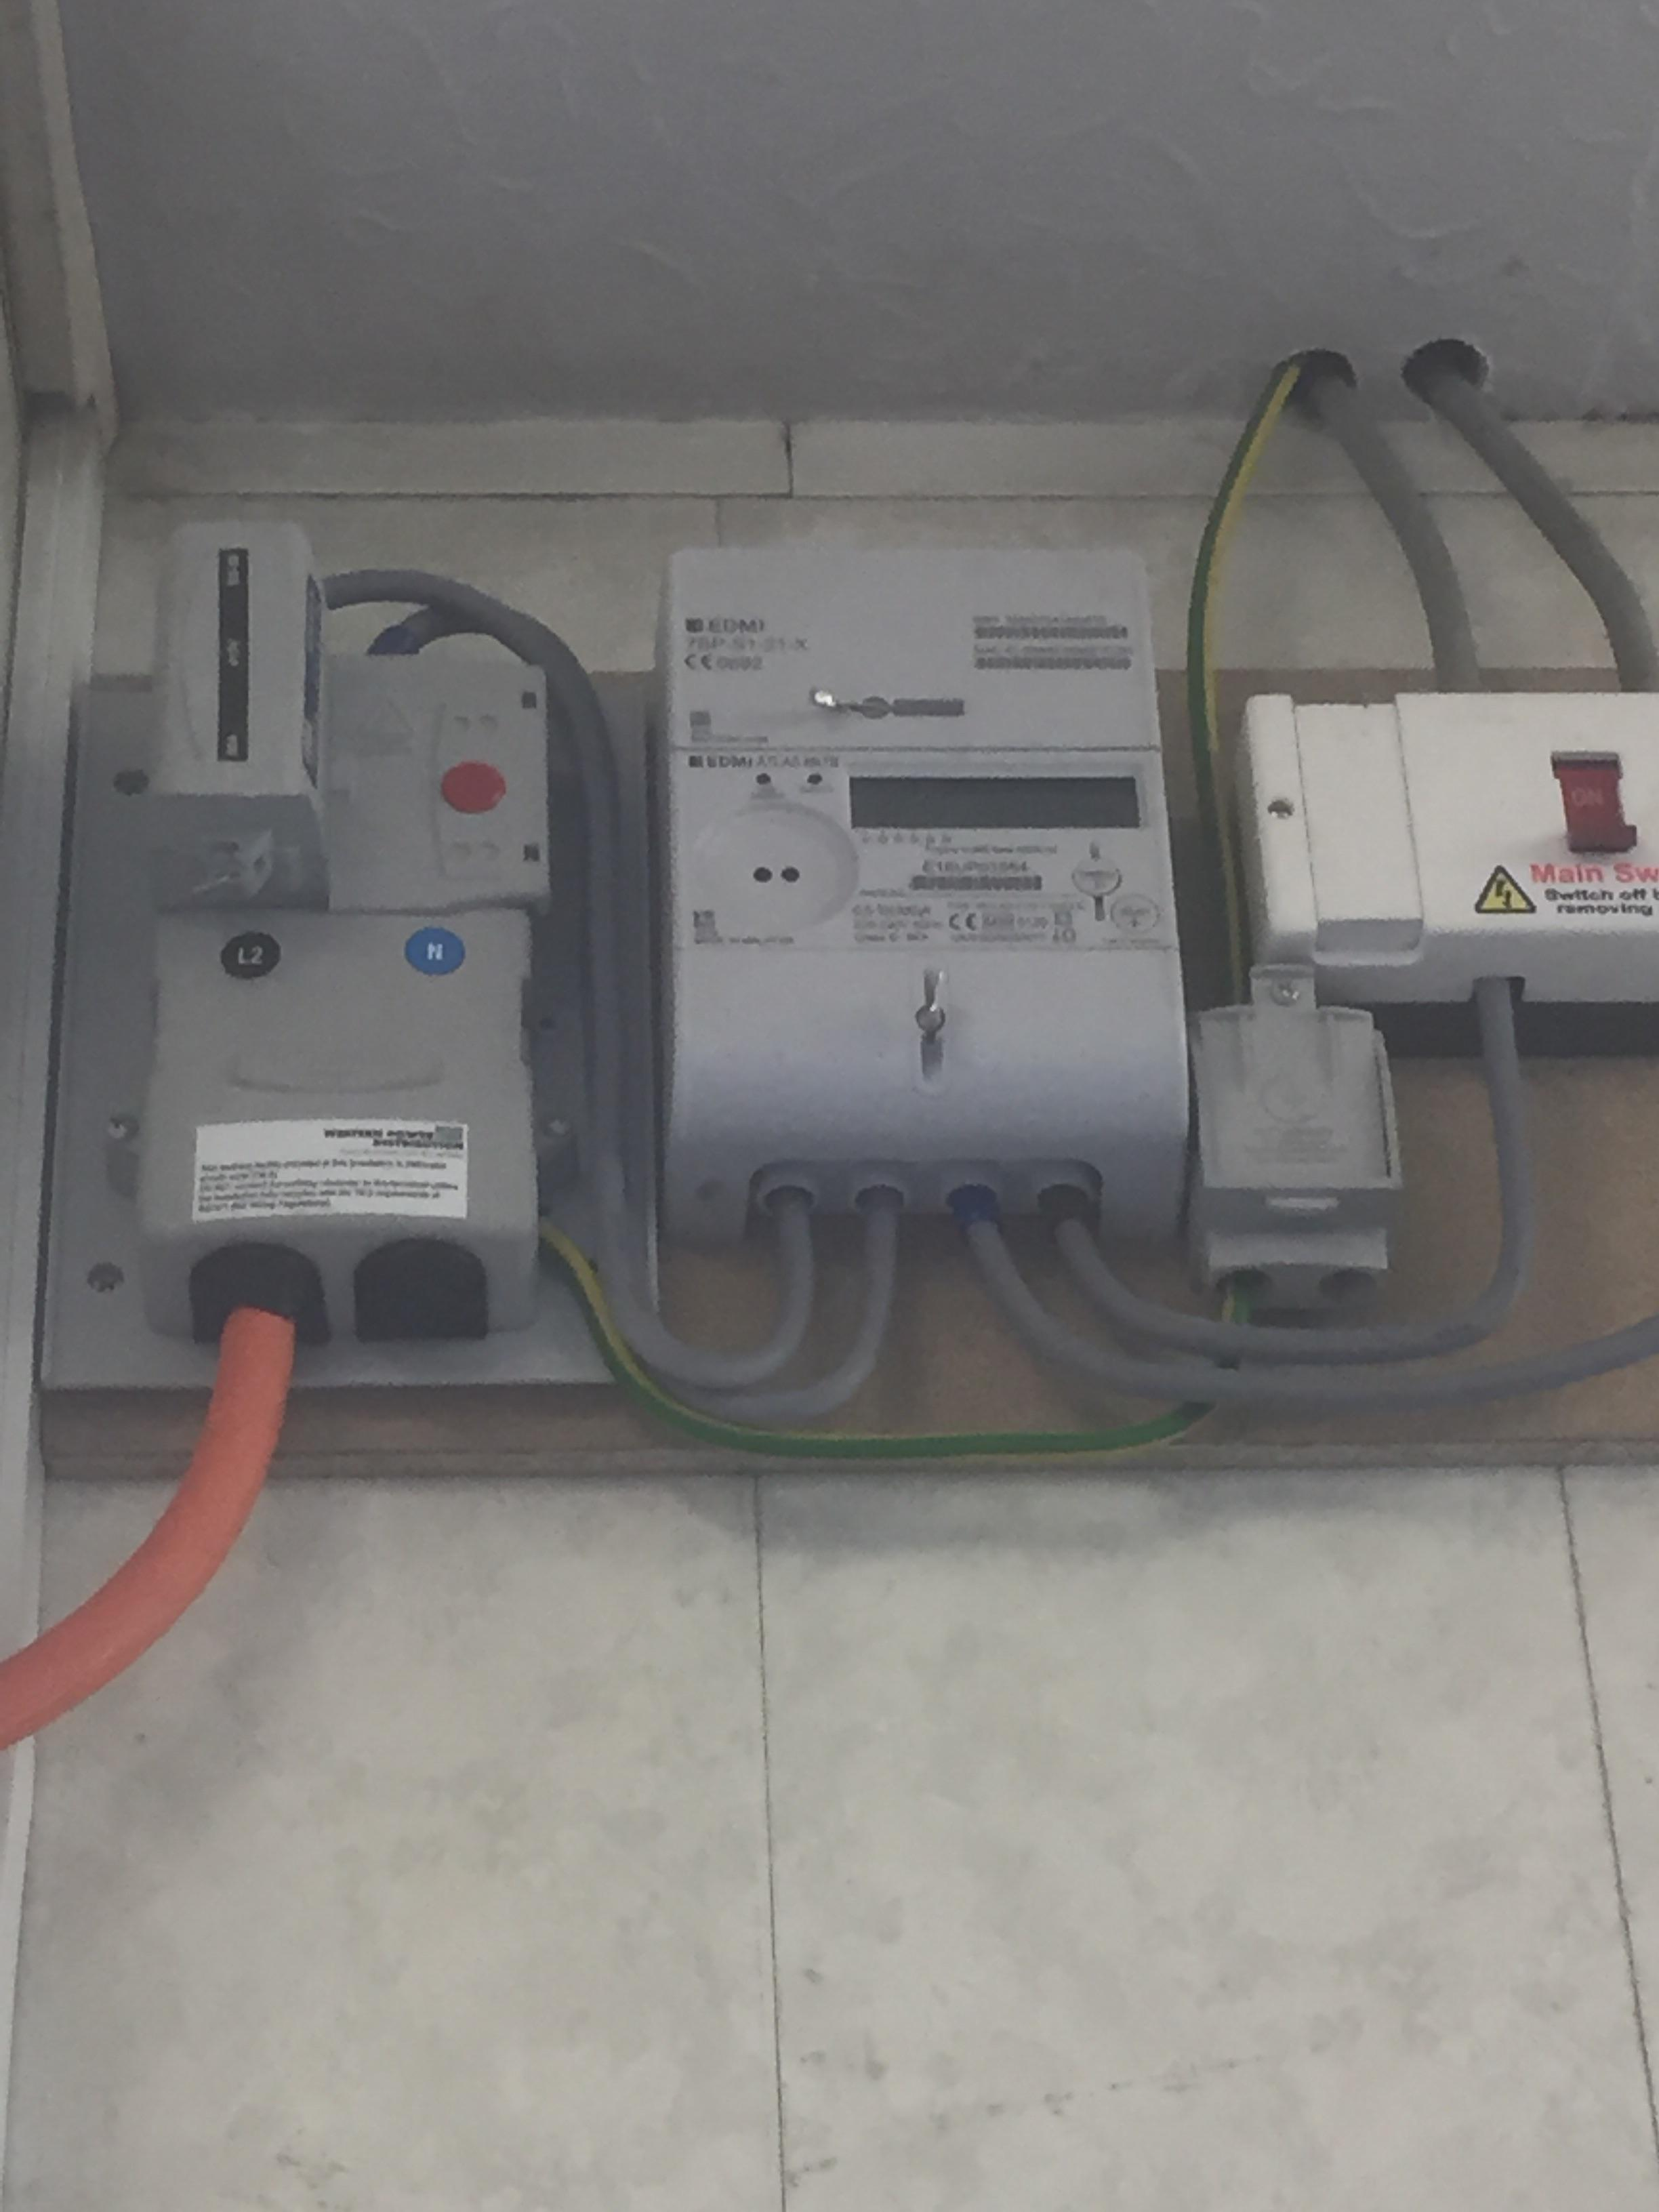 Meter Tails Colour Rules Electrics Other Buildhuborguk Uk Wiring Colours Grey Imagethumbe4d8605e78130e64829e9cdf07968fc3